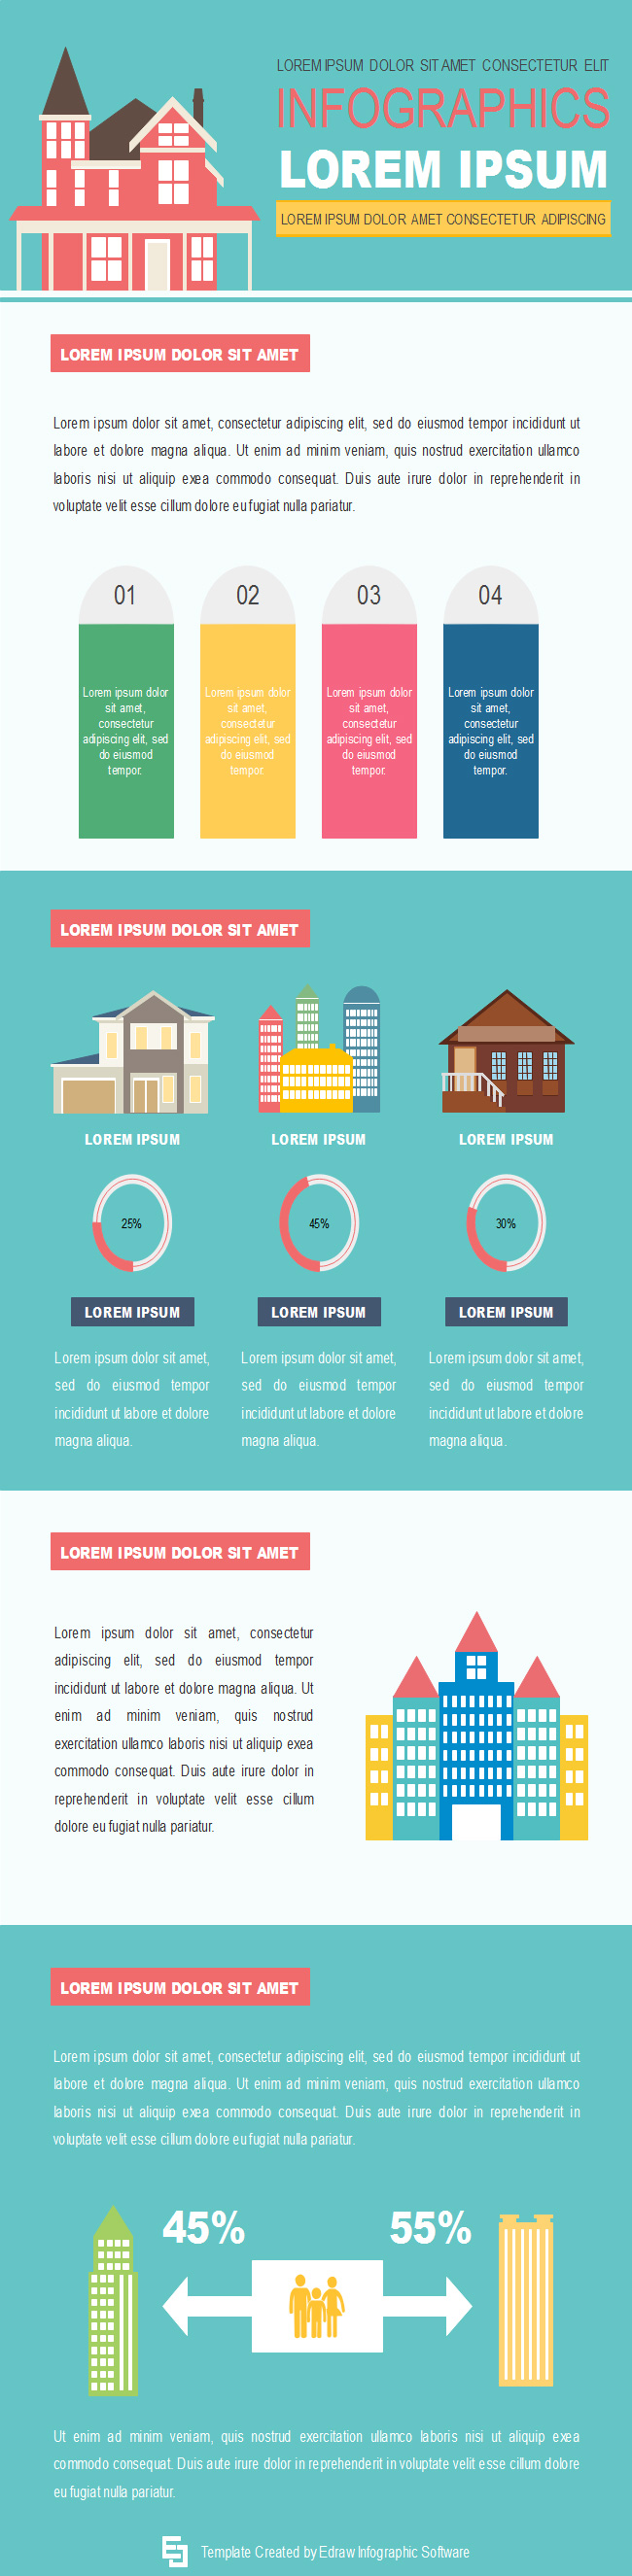 citizen-dwelling-infographic